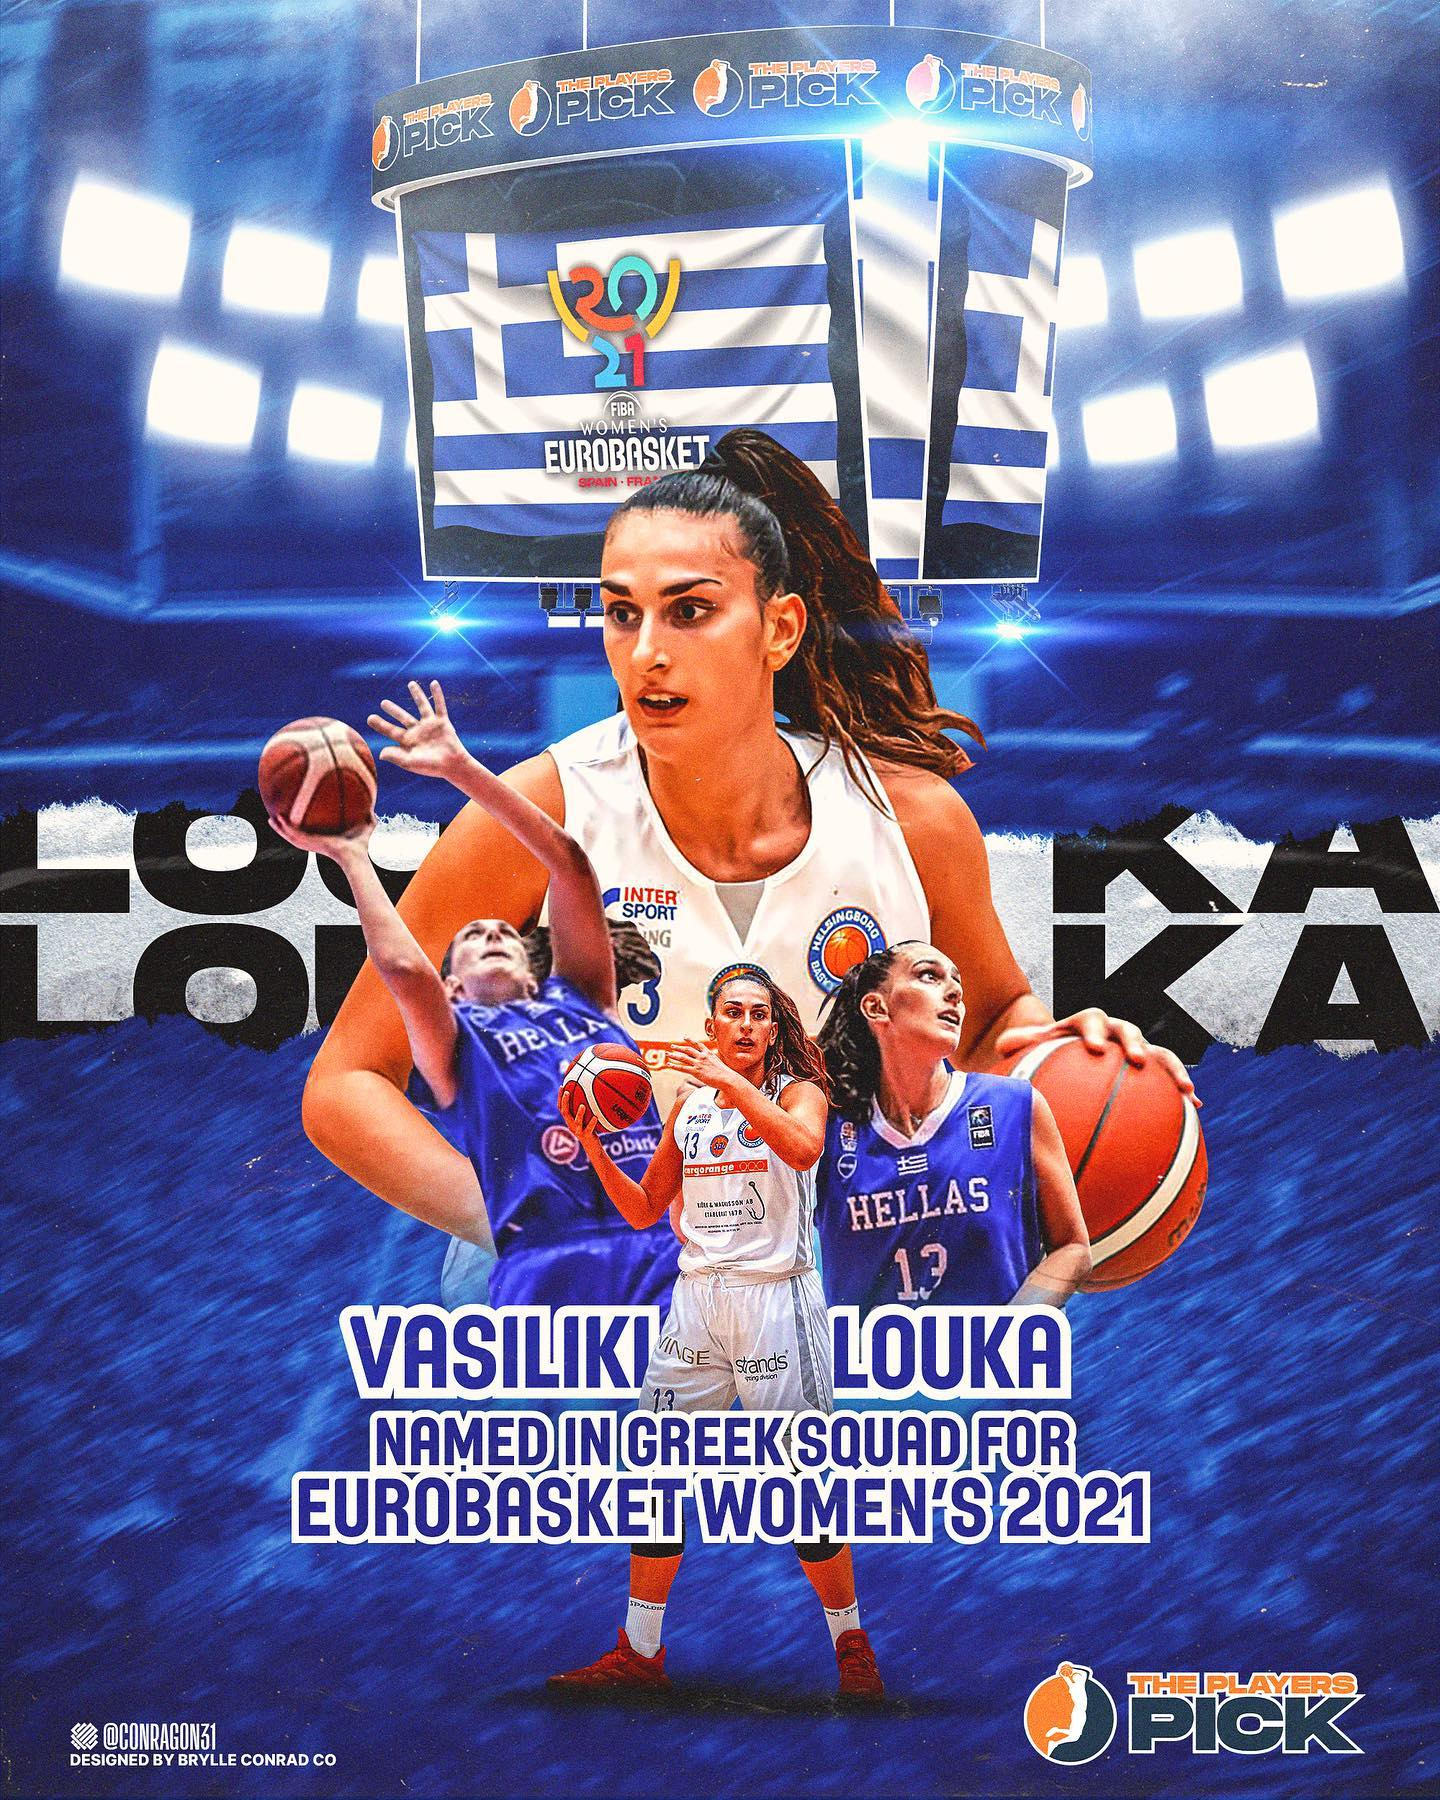 Vasiliki Louka named in Greek squad for Eurobasket 2021!